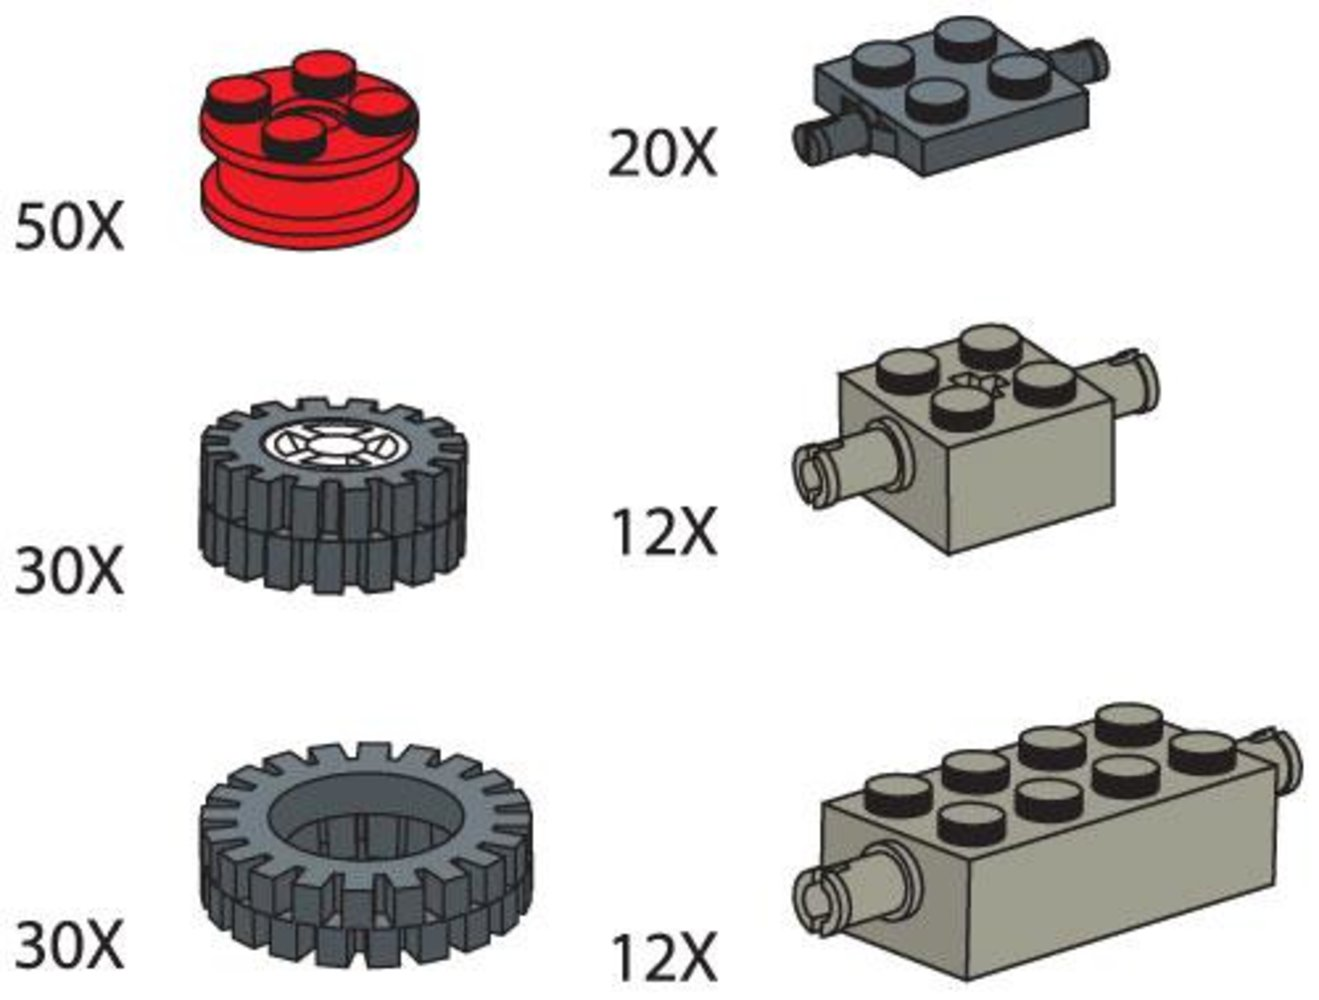 Wheels (Tires hubs axle plates and bricks)